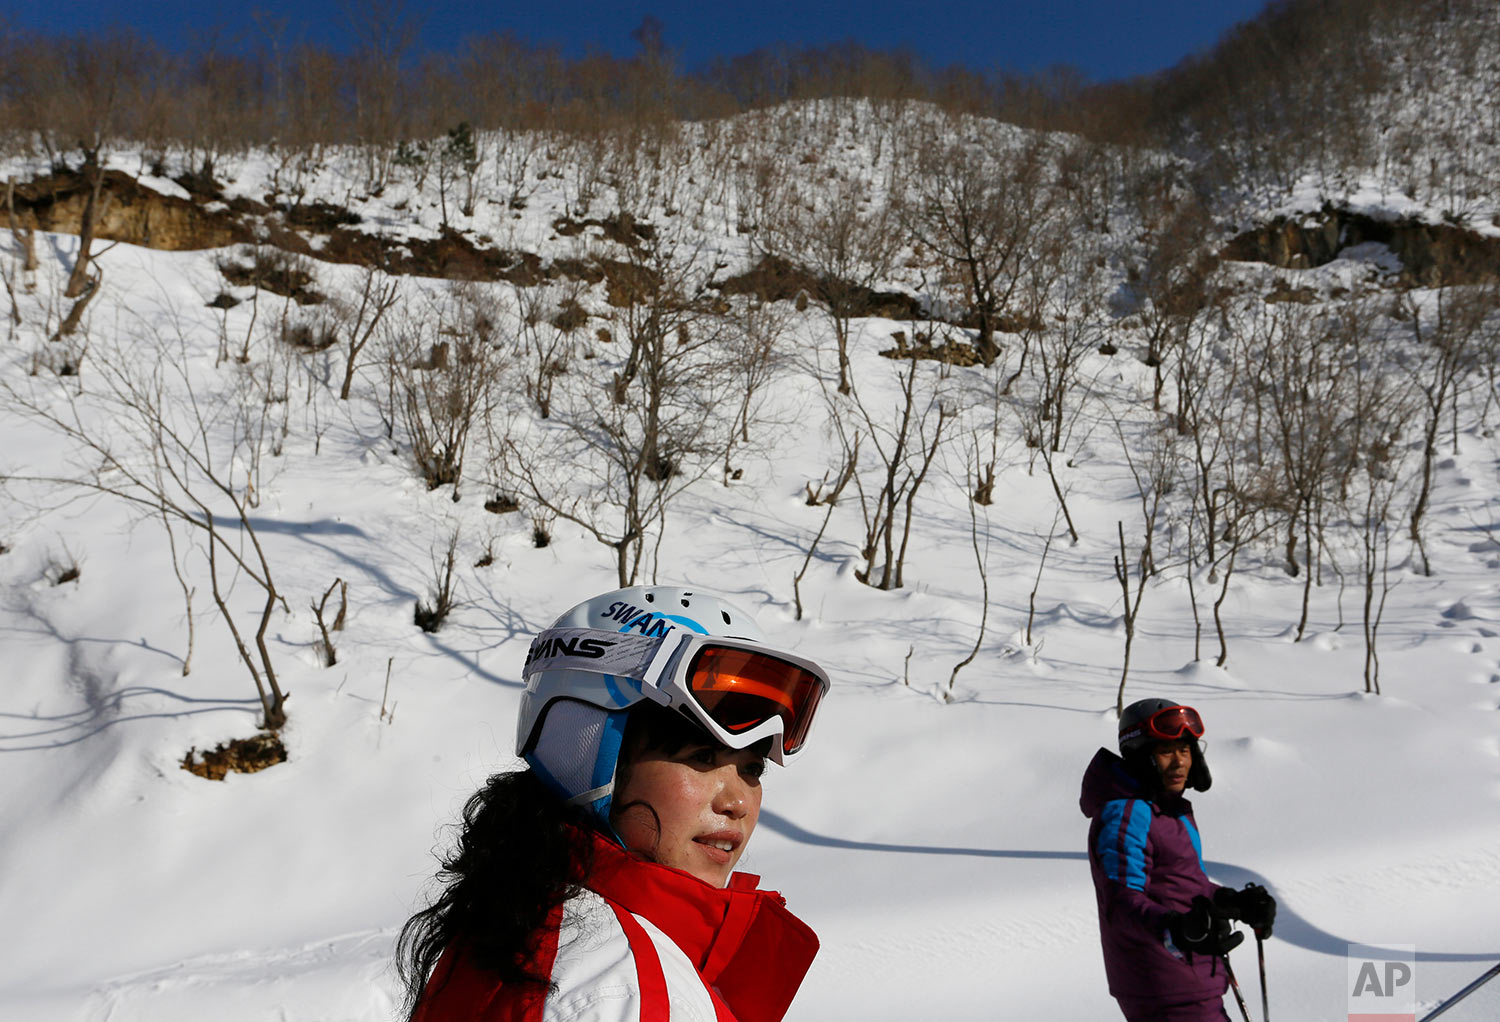 A man and woman ski at the Masik Pass ski resort, nestled deep in North Korea's eastern mountains, on Feb. 22, 2014. The resort has 10 ski runs, from beginning to advanced, a well-equipped rental shop, and a 250-room, eight-story hotel for foreigners alongside a 150-room hotel for Koreans. (AP Photo/Vincent Yu)